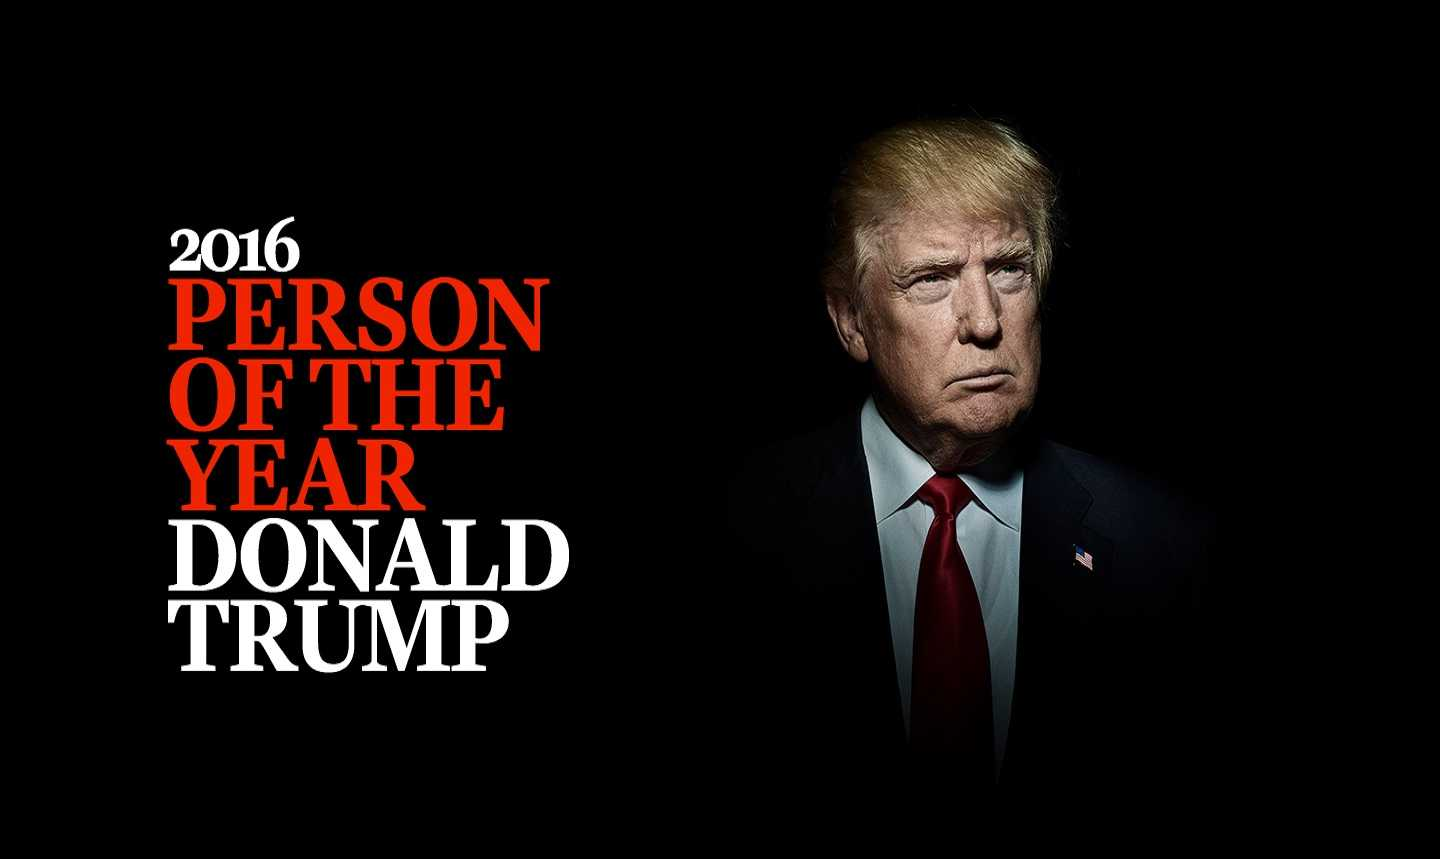 Trump is the person of the year according to TIME magazine